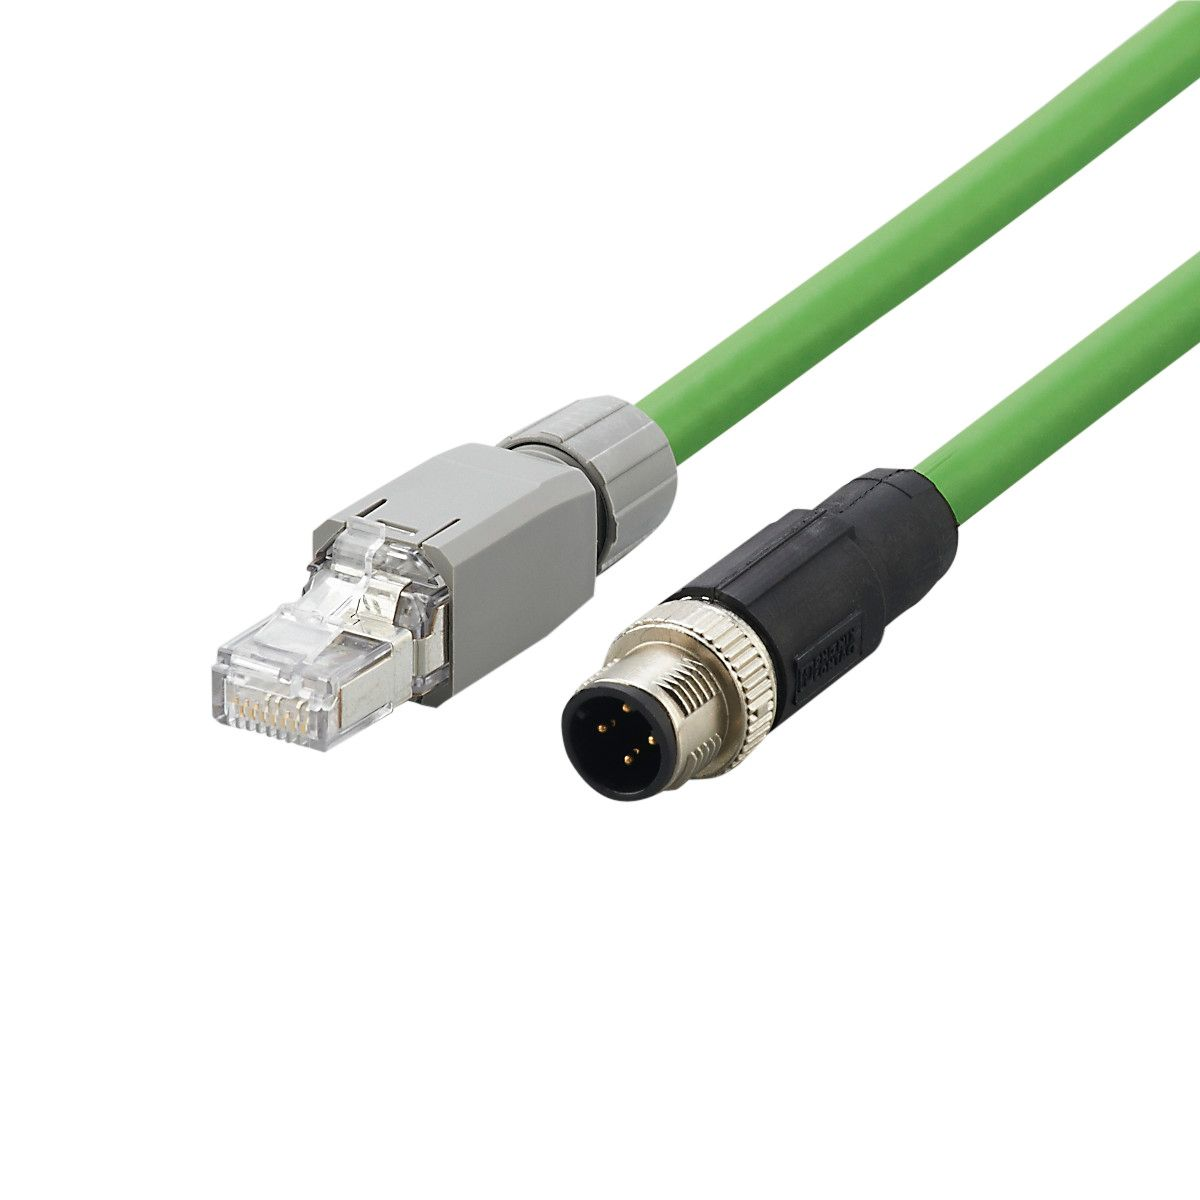 E12491 Connection Cable Ifm Electronic